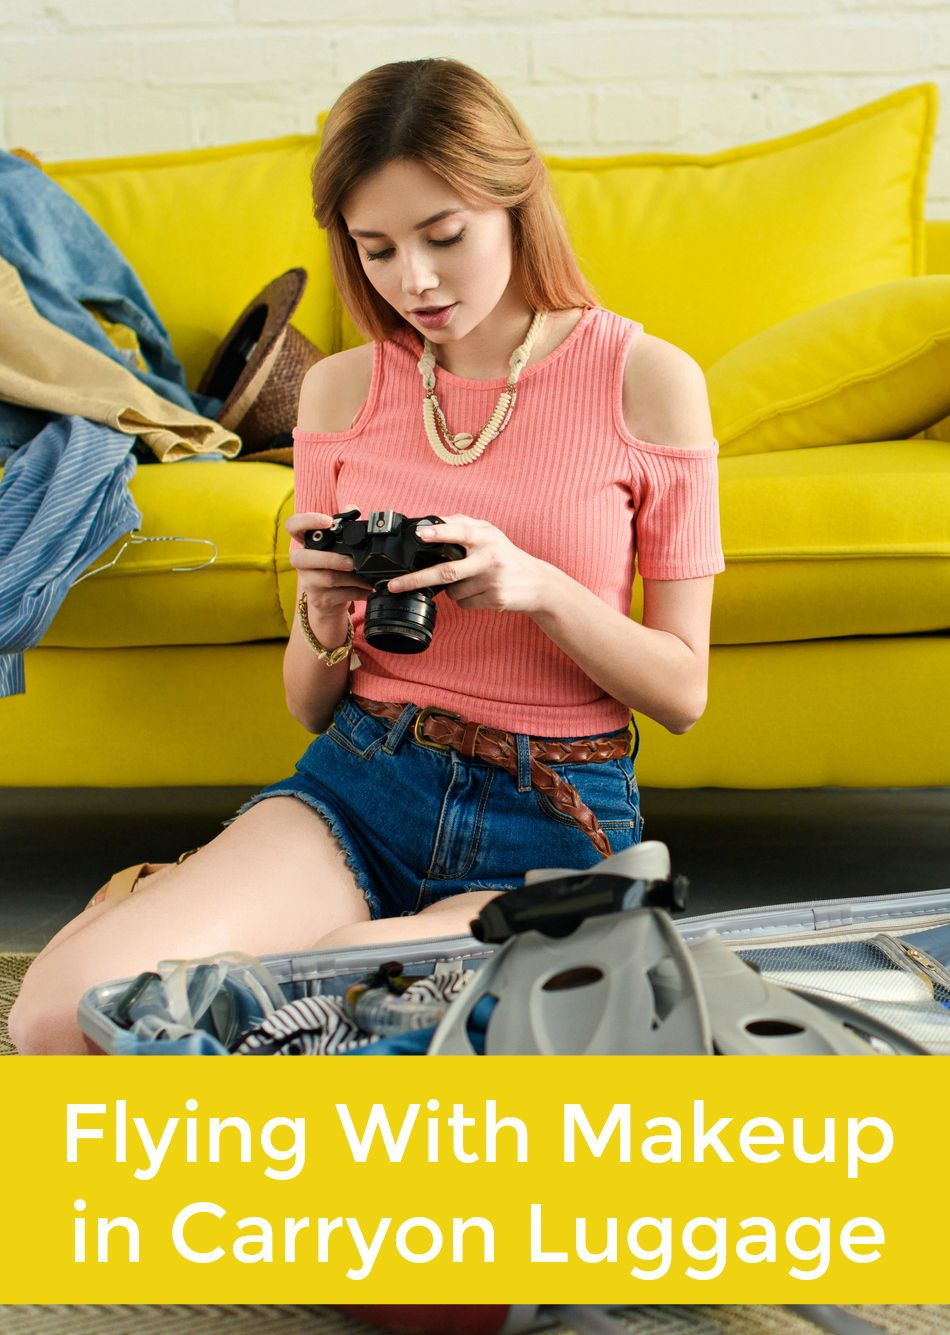 Everything you need to know about flying with makeup in your carryon luggage. #travel #flying #makeup